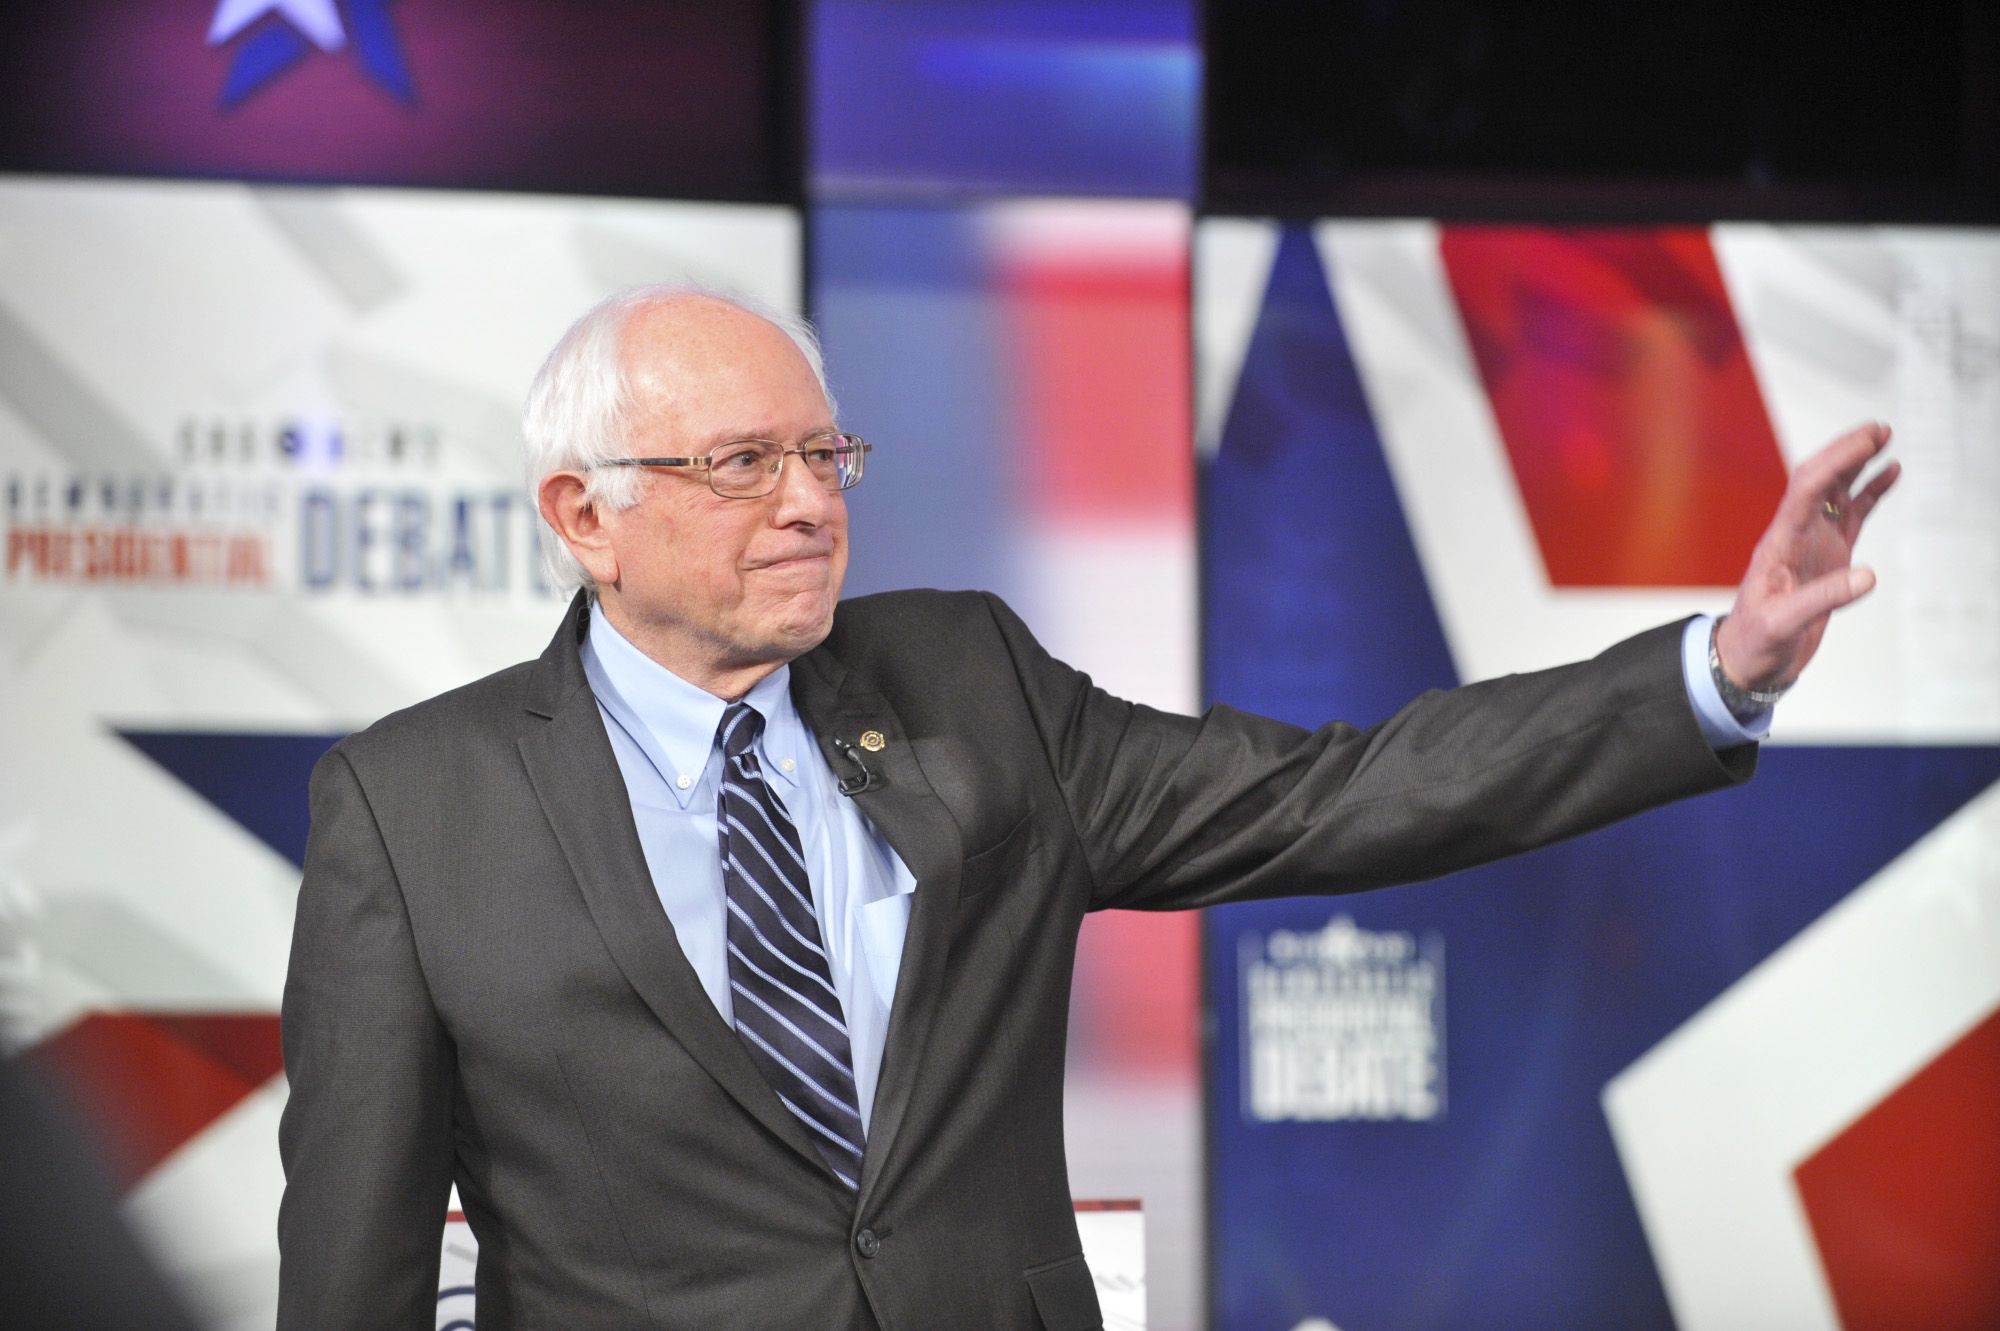 Bernie Sanders Is Running for President in 2020. Here's Where He Stands on 9 Important Issues.